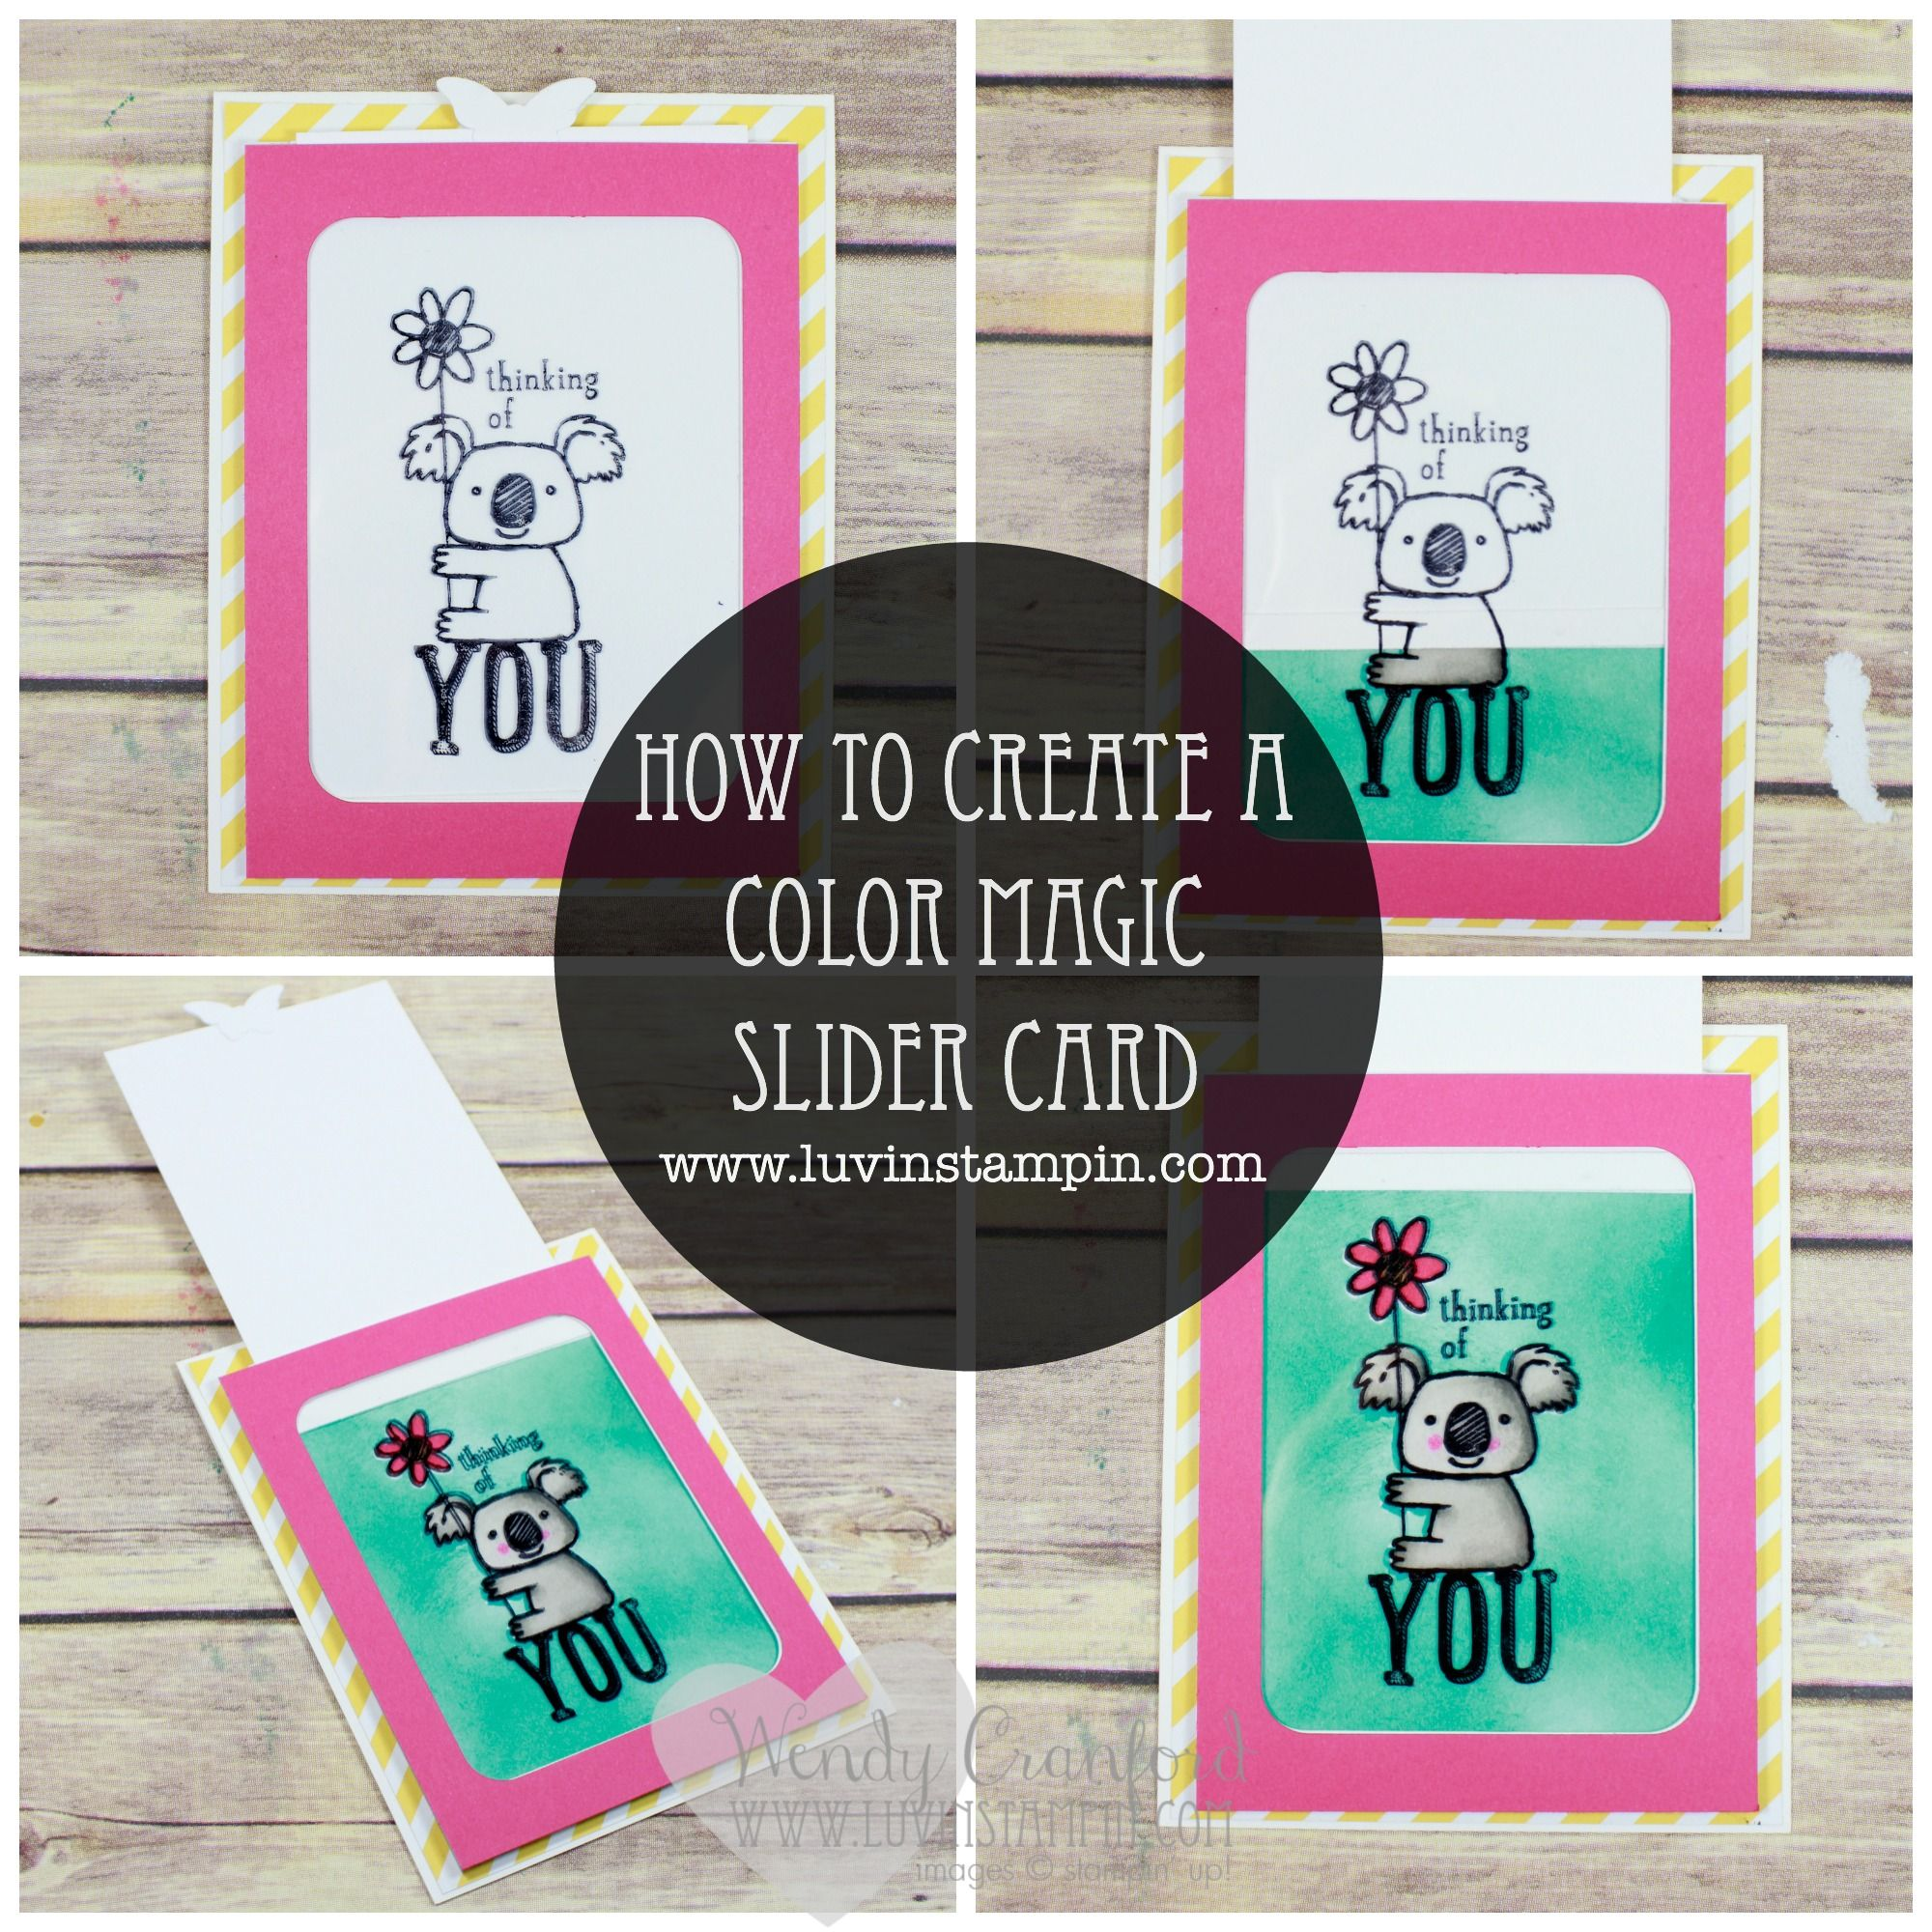 Color Magic Slider Card Using Stampin Up Products Wendy Cranford Www Luvinstampin Com Slider Cards Magic Cards Card Tutorial